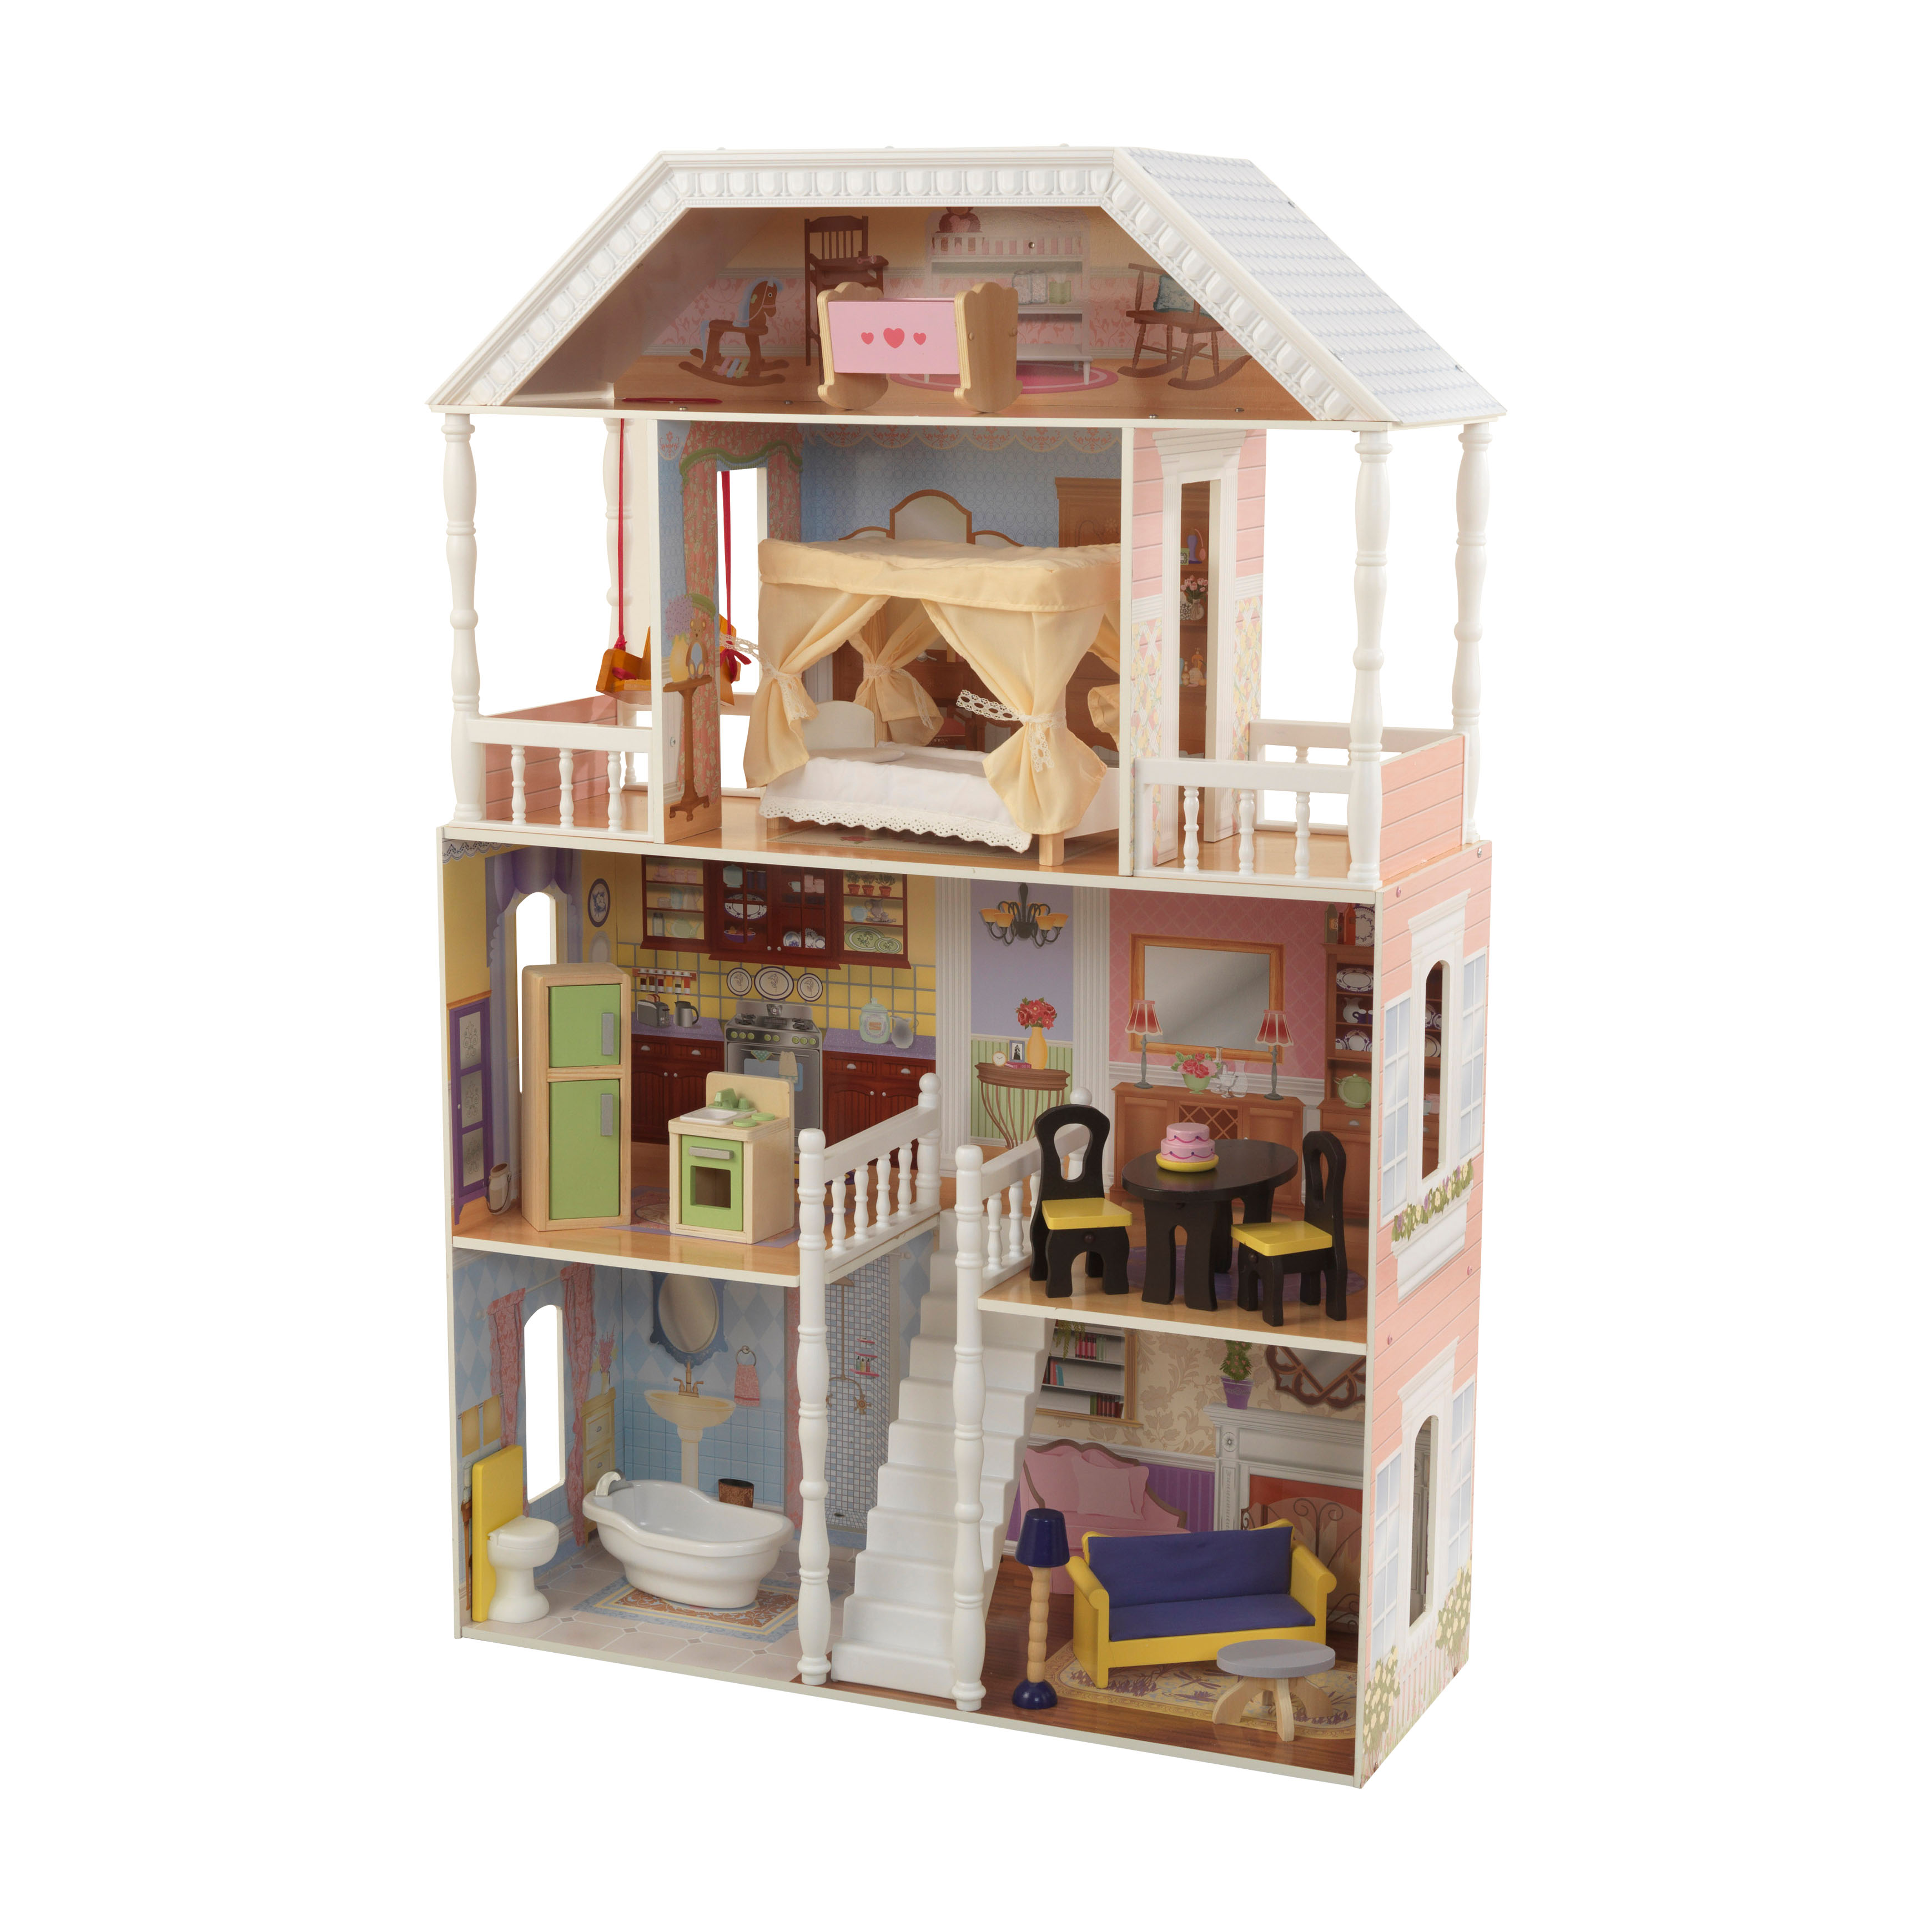 Click here to buy KidKraft Savannah Dollhouse with 13 accessories included by KidKraft.